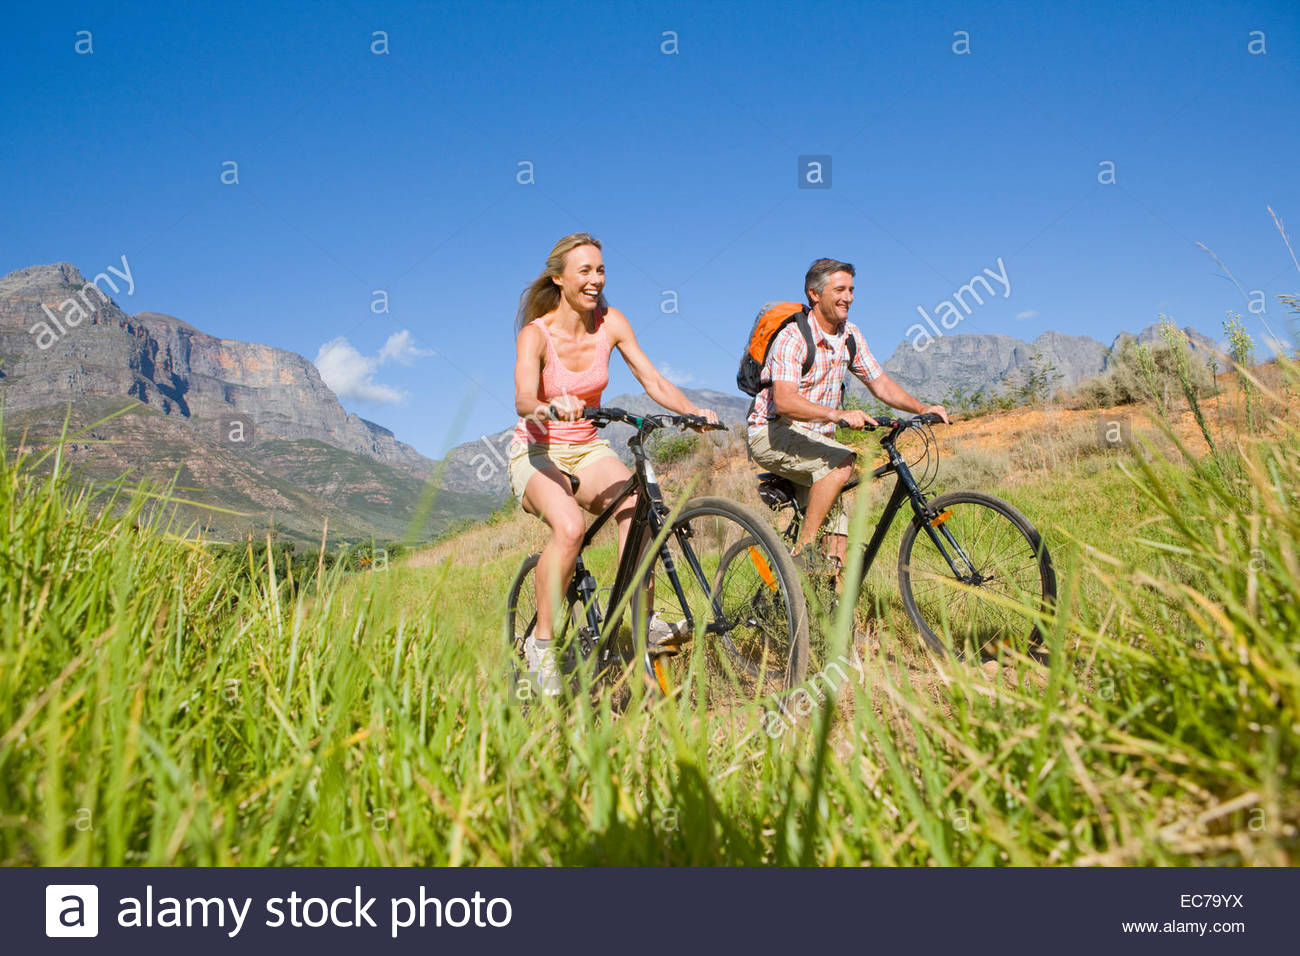 Couple mountain biking in countryside - Stock Image